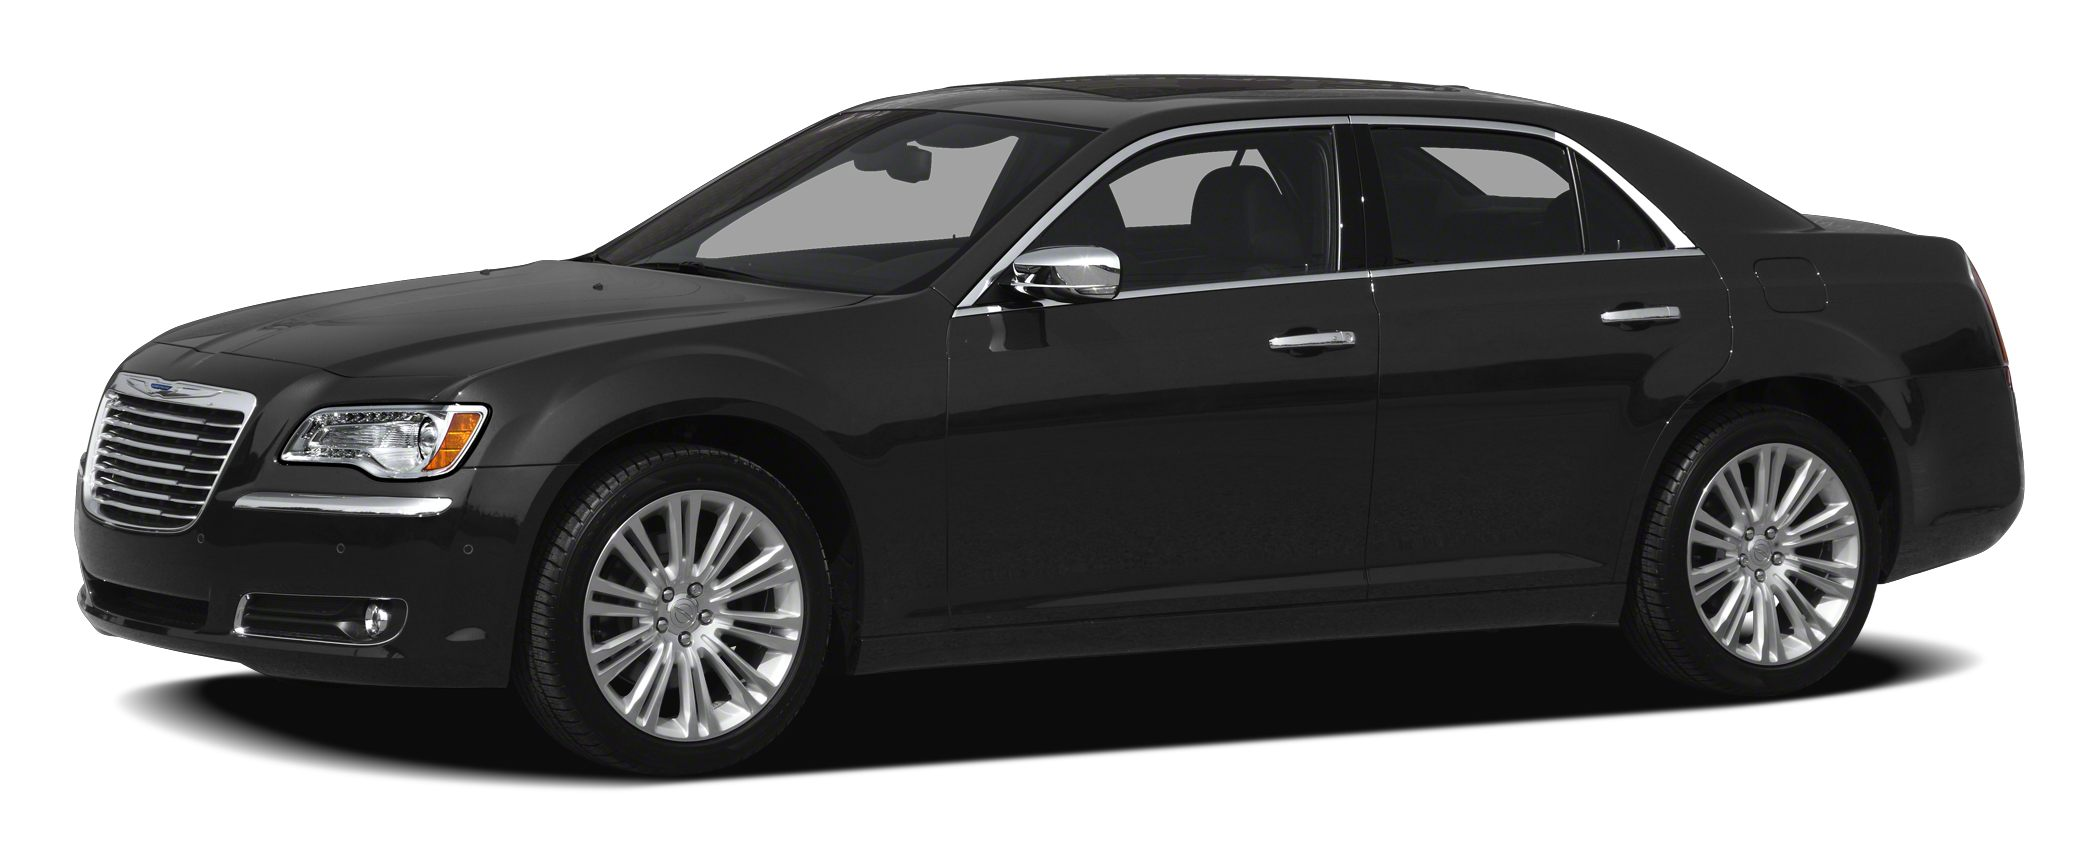 2012 Chrysler 300C Luxury Series DISCLAIMER We are excited to offer this vehicle to you but it is